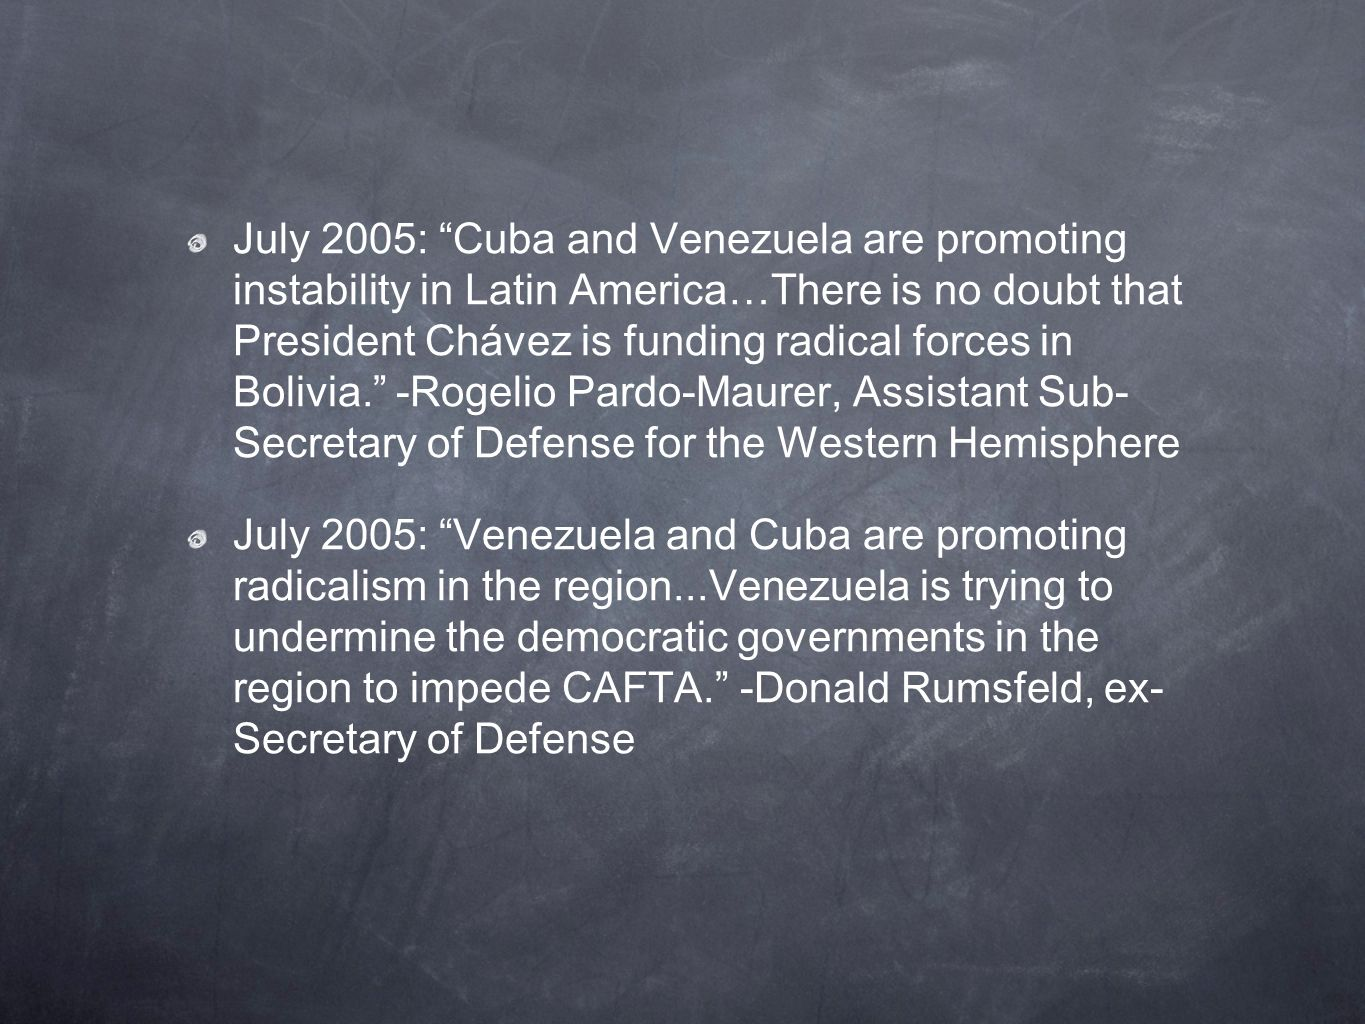 July 2005: Cuba and Venezuela are promoting instability in Latin America…There is no doubt that President Chávez is funding radical forces in Bolivia. -Rogelio Pardo-Maurer, Assistant Sub- Secretary of Defense for the Western Hemisphere July 2005: Venezuela and Cuba are promoting radicalism in the region...Venezuela is trying to undermine the democratic governments in the region to impede CAFTA. -Donald Rumsfeld, ex- Secretary of Defense